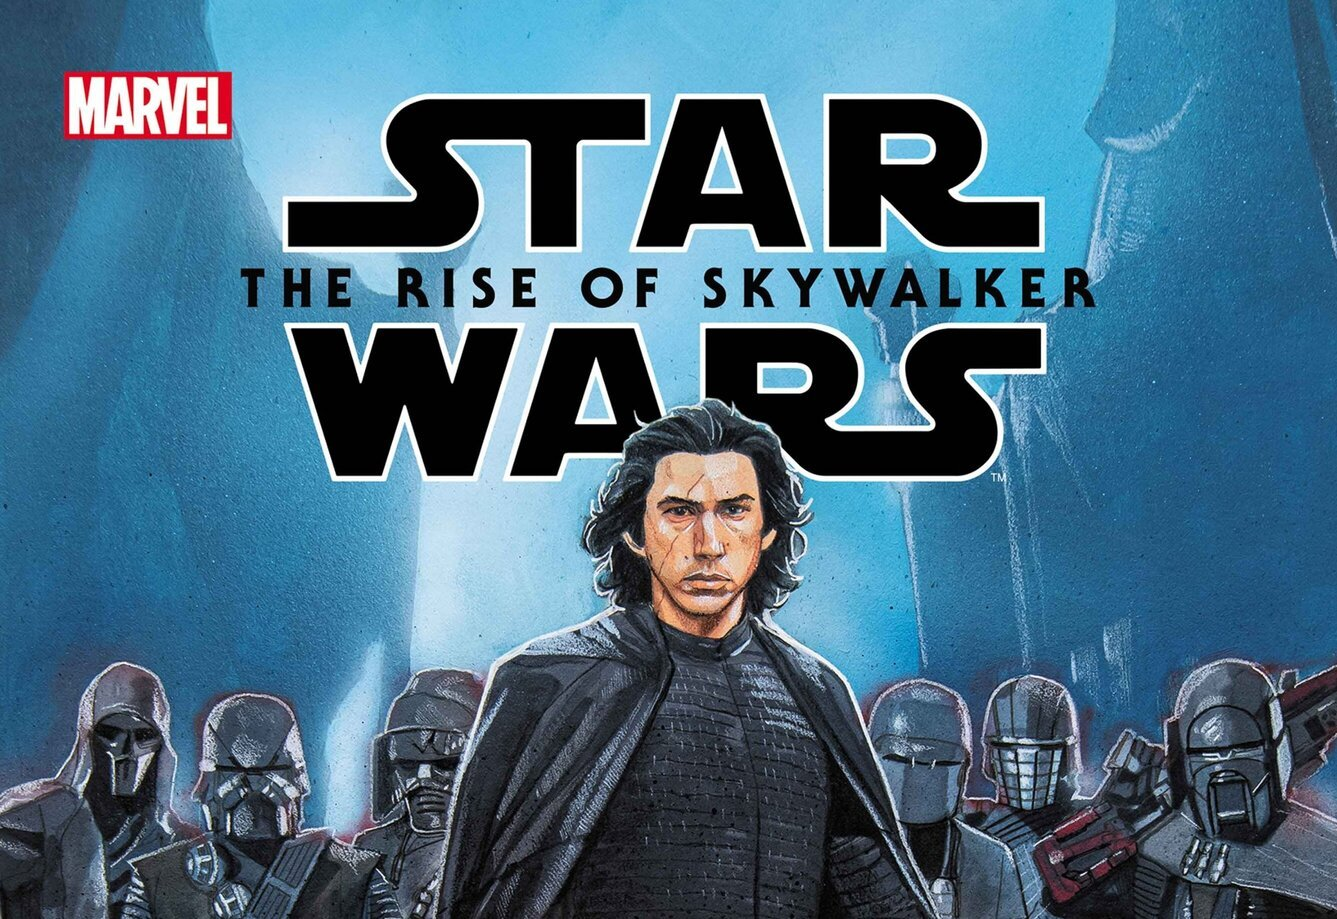 The Rise of Skywalker #1